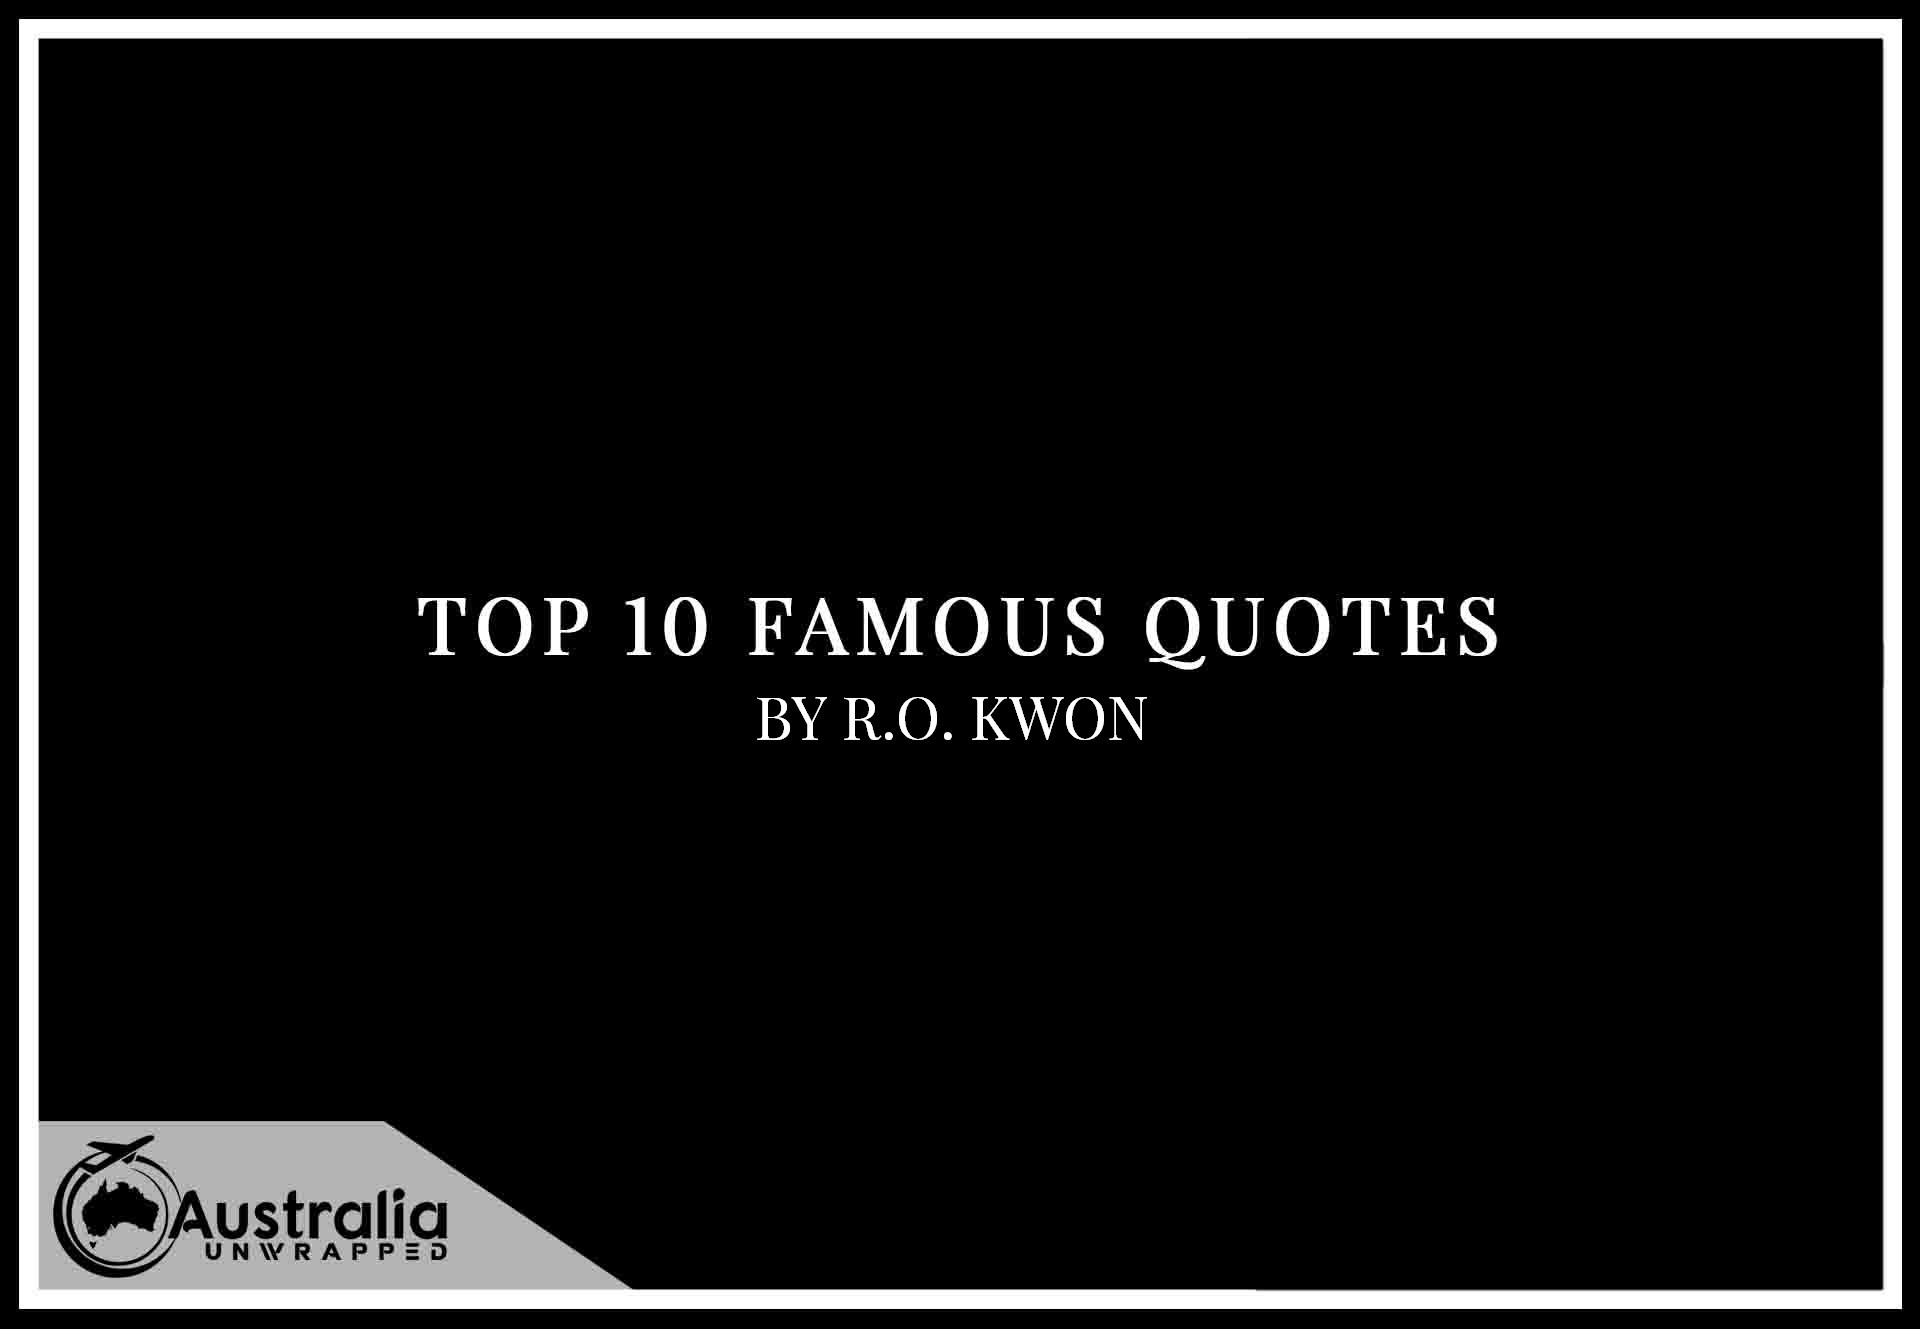 Top 10 Famous Quotes by Author R.O. Kwon